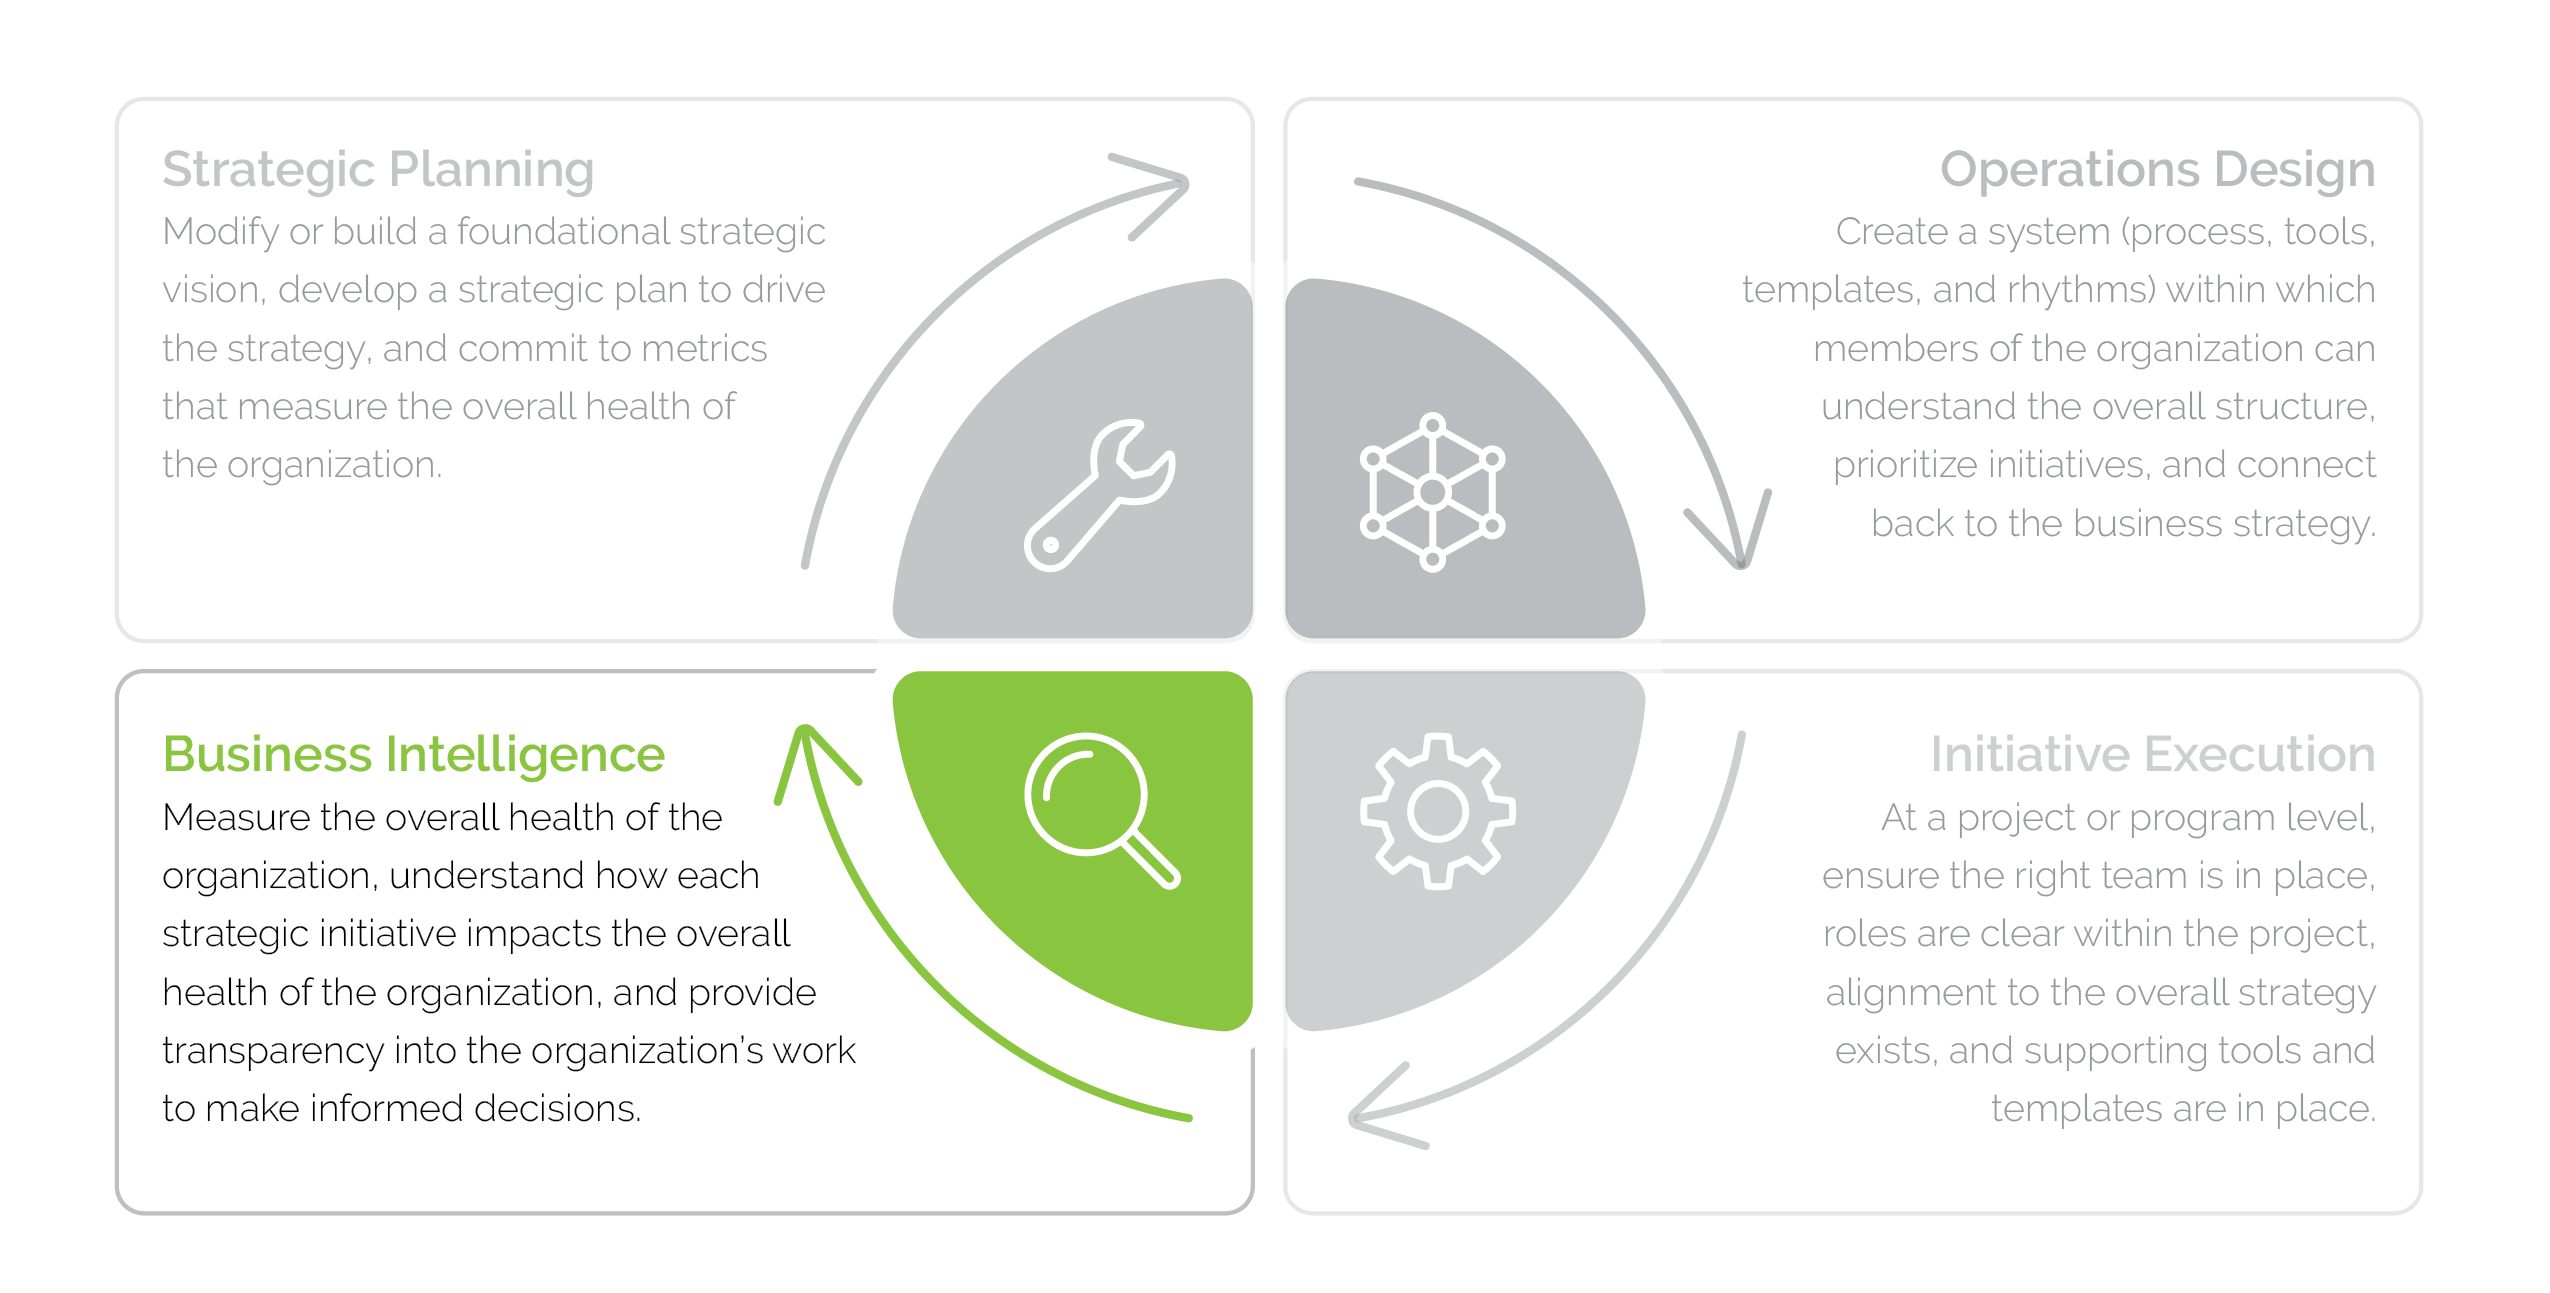 Graphic of the four steps of business operations: strategic planning, operations, design, initiative execution and business intelligence, with an emphasis on business intelligence